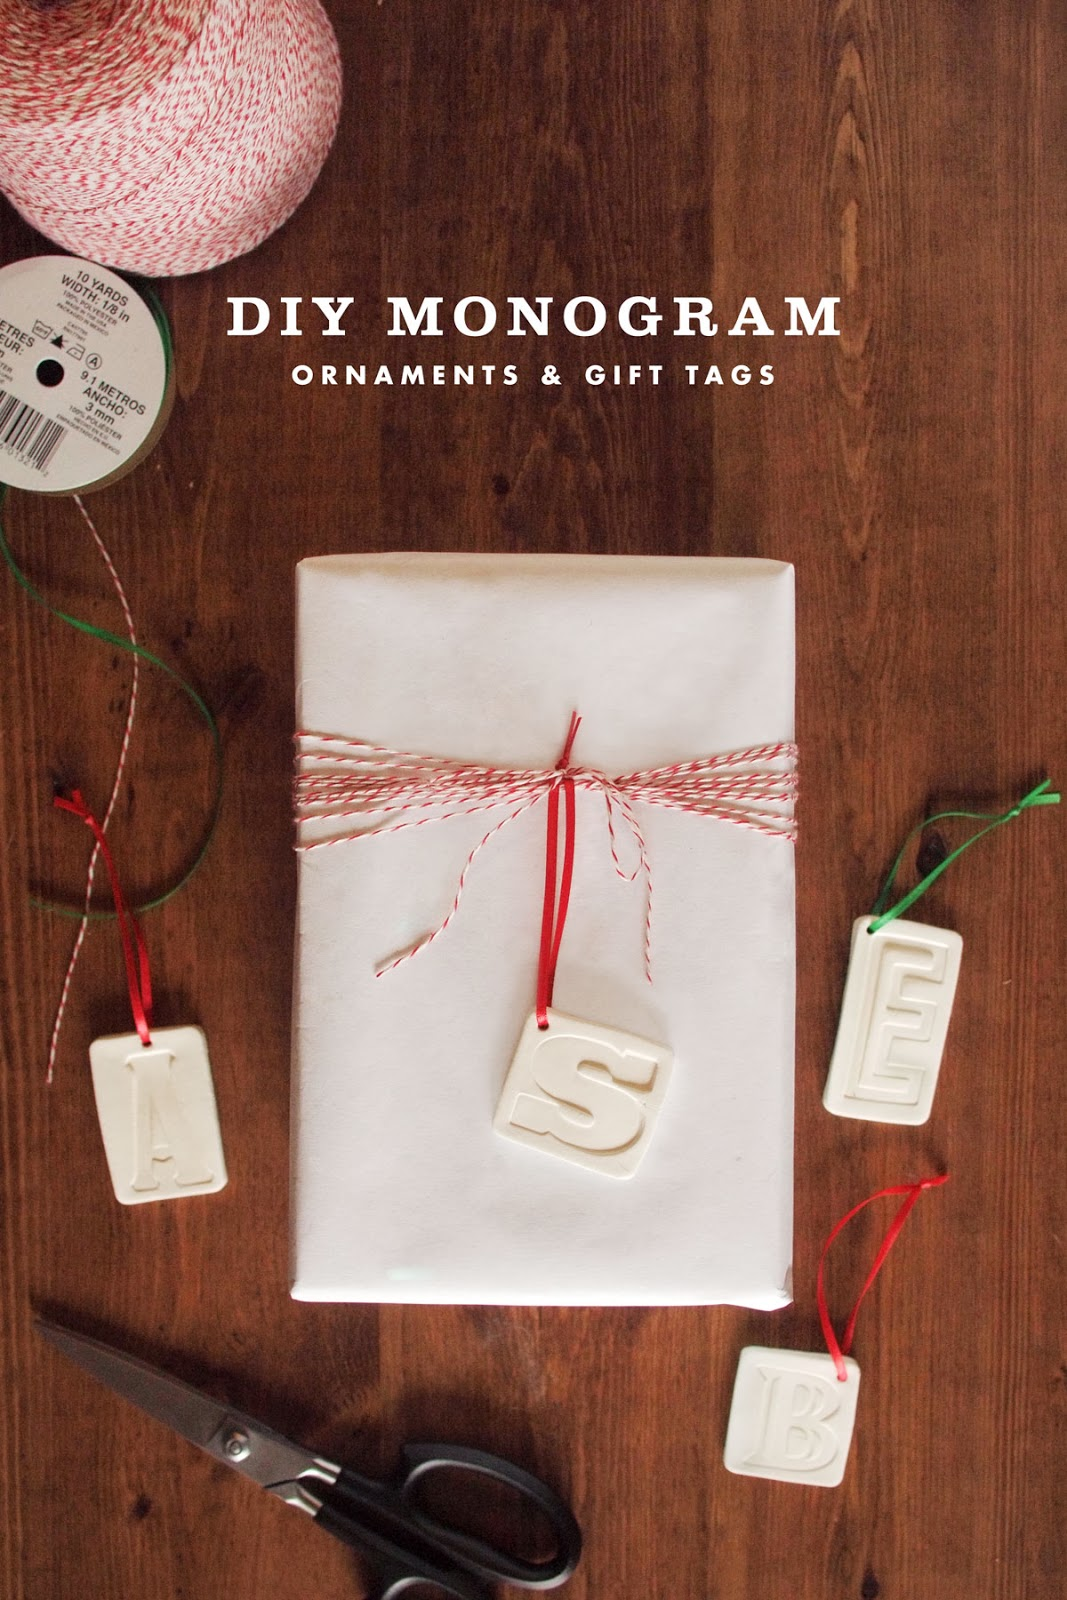 diy clay monogram ornaments  u0026 gift tags